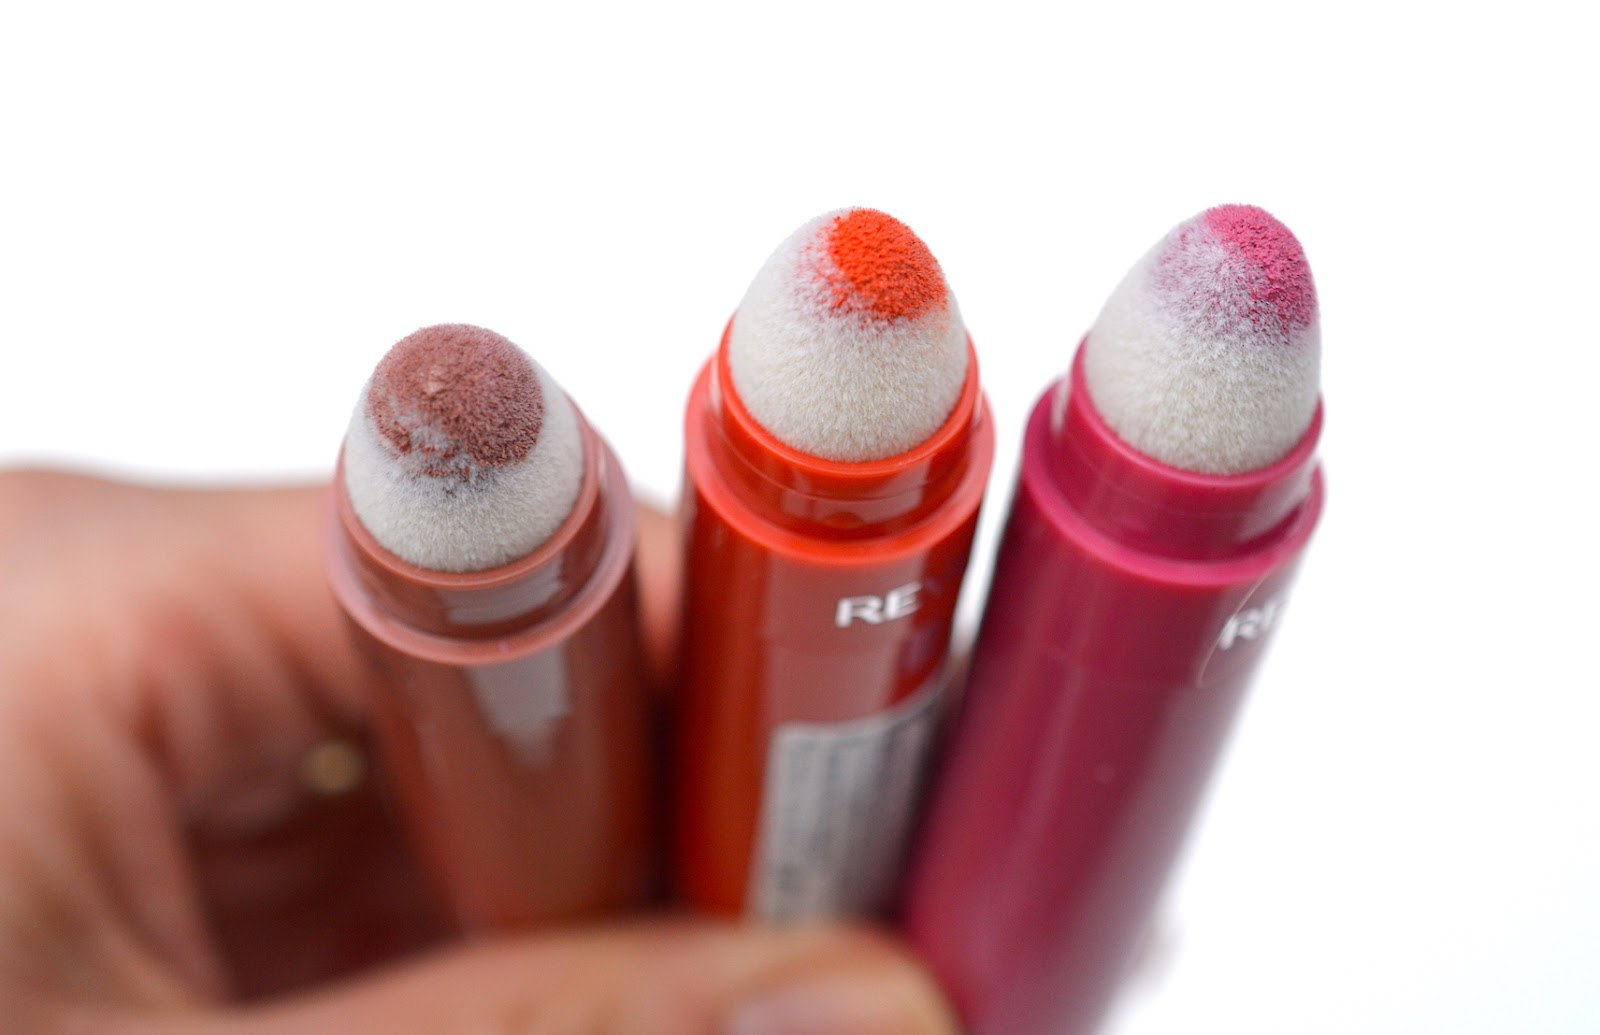 REVLON Kiss CUSHION LIP TINT Review